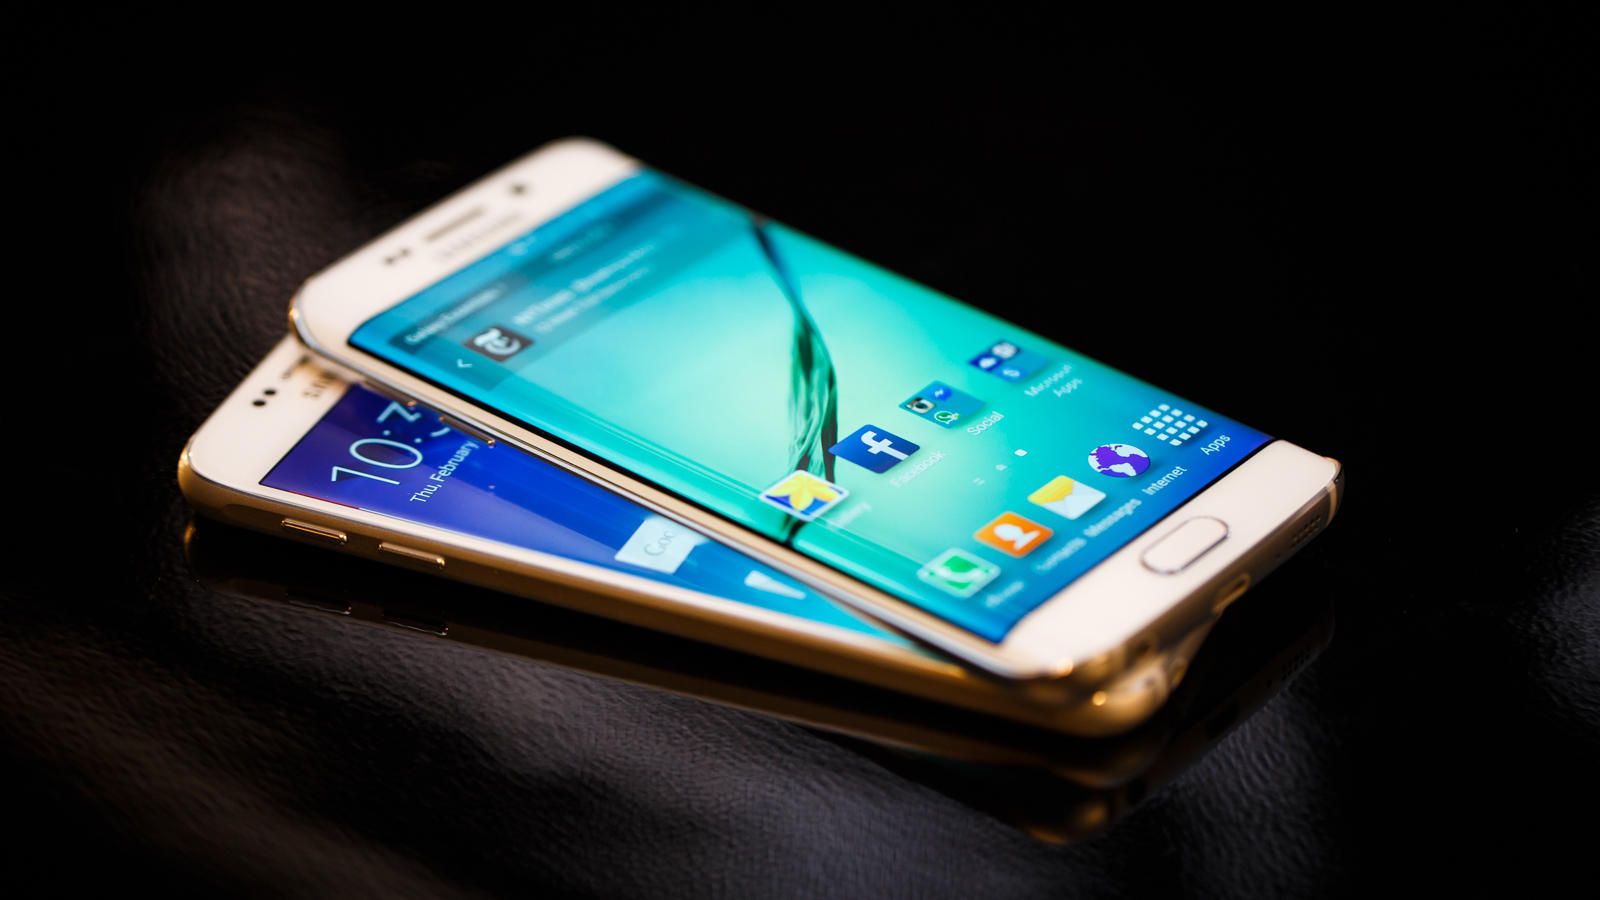 Meet the Galaxy S6 and Galaxy S6 Edge. Samsung's latest flagship phones share very similar specs and designs, but a few key differences help them stand apart.